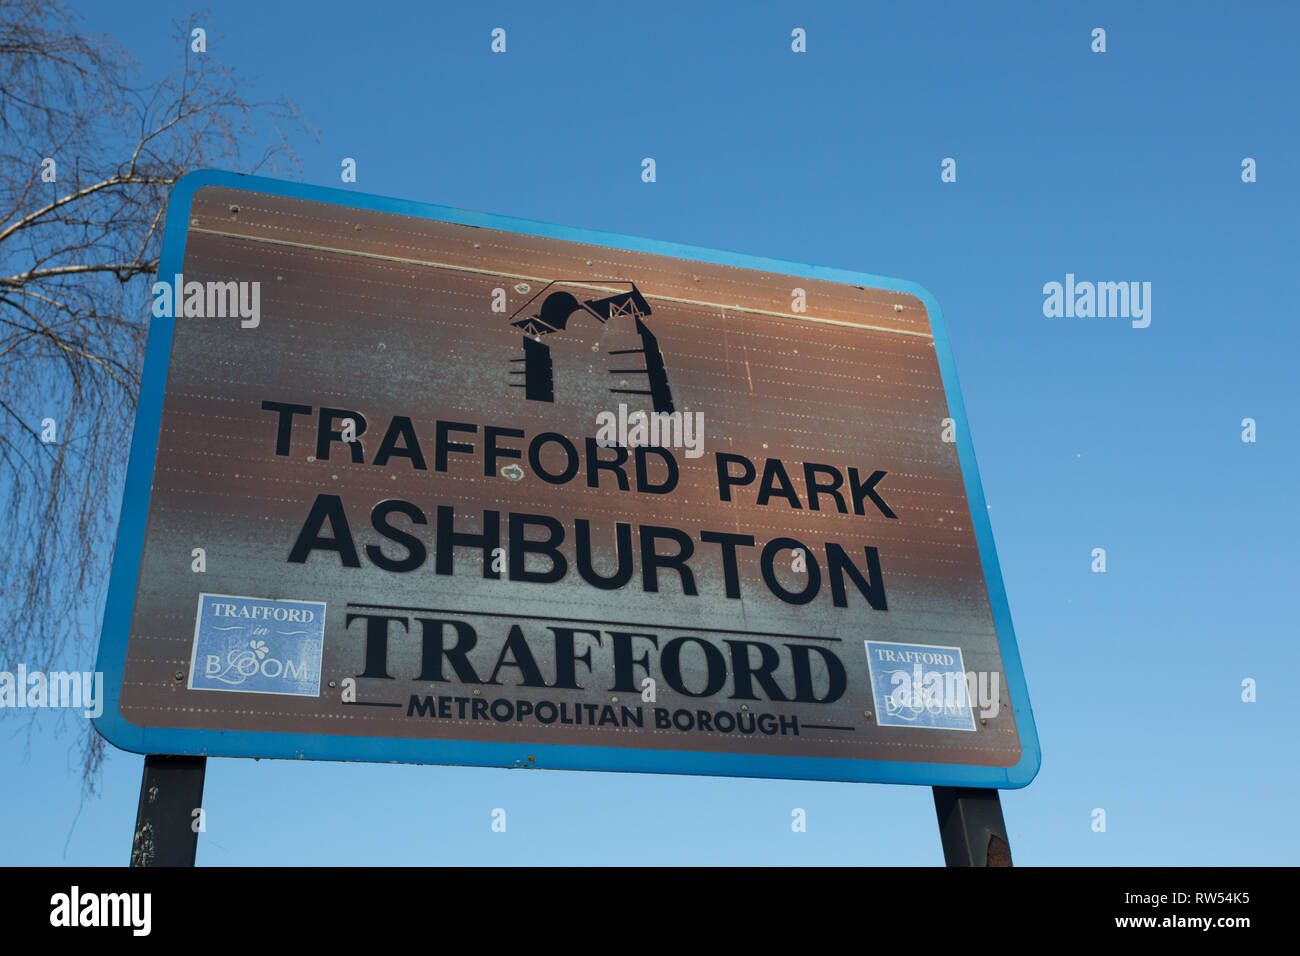 Trafford Park, Ashburton, Greater Manchester sign - Stock Image